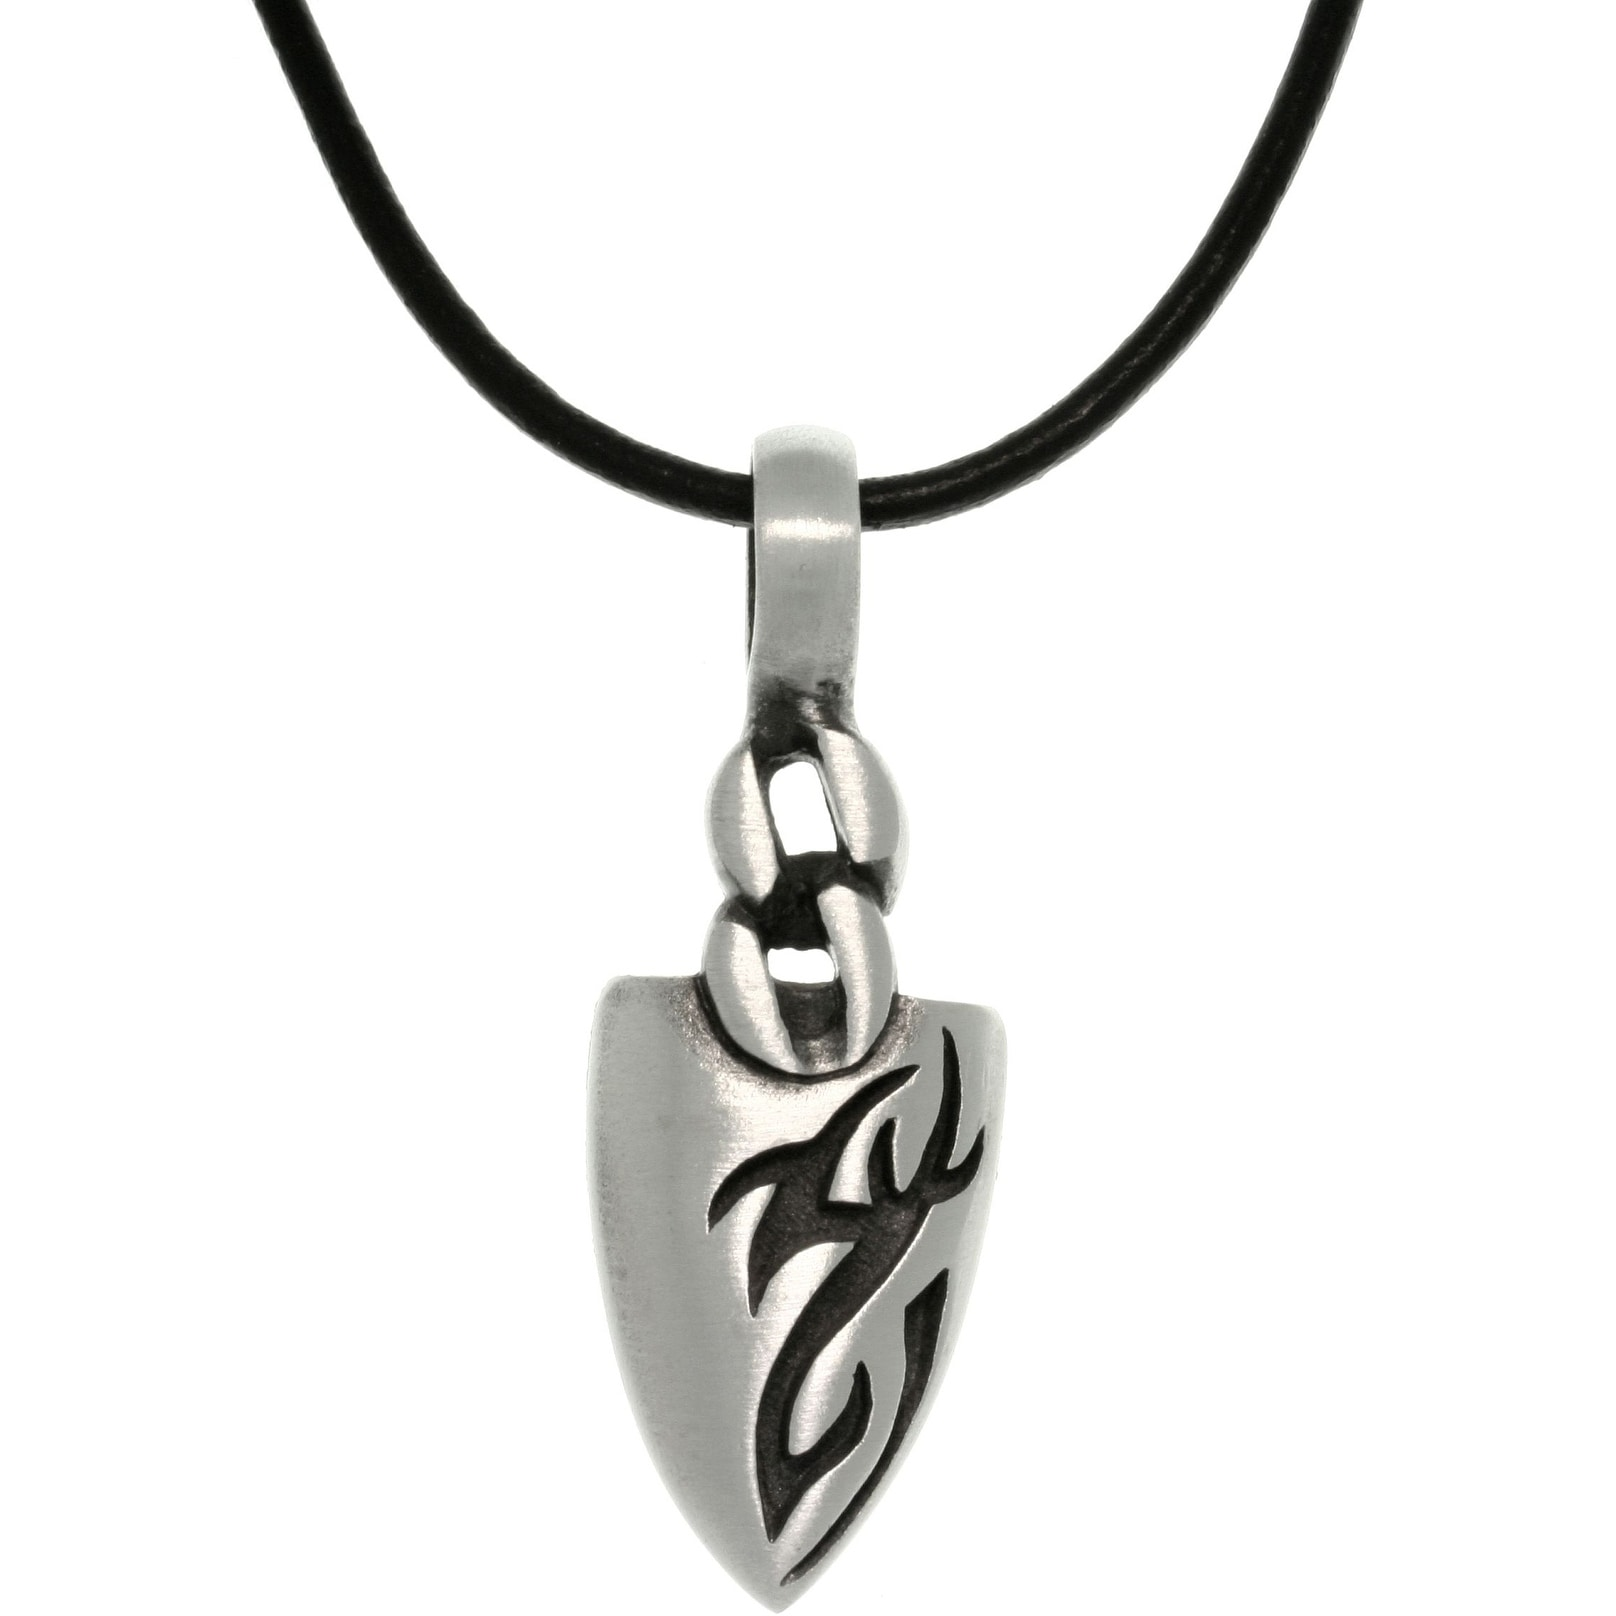 b28b0299f2115 Pewter Men's Tattoo Design Arrowhead Black Leather Cord Necklace